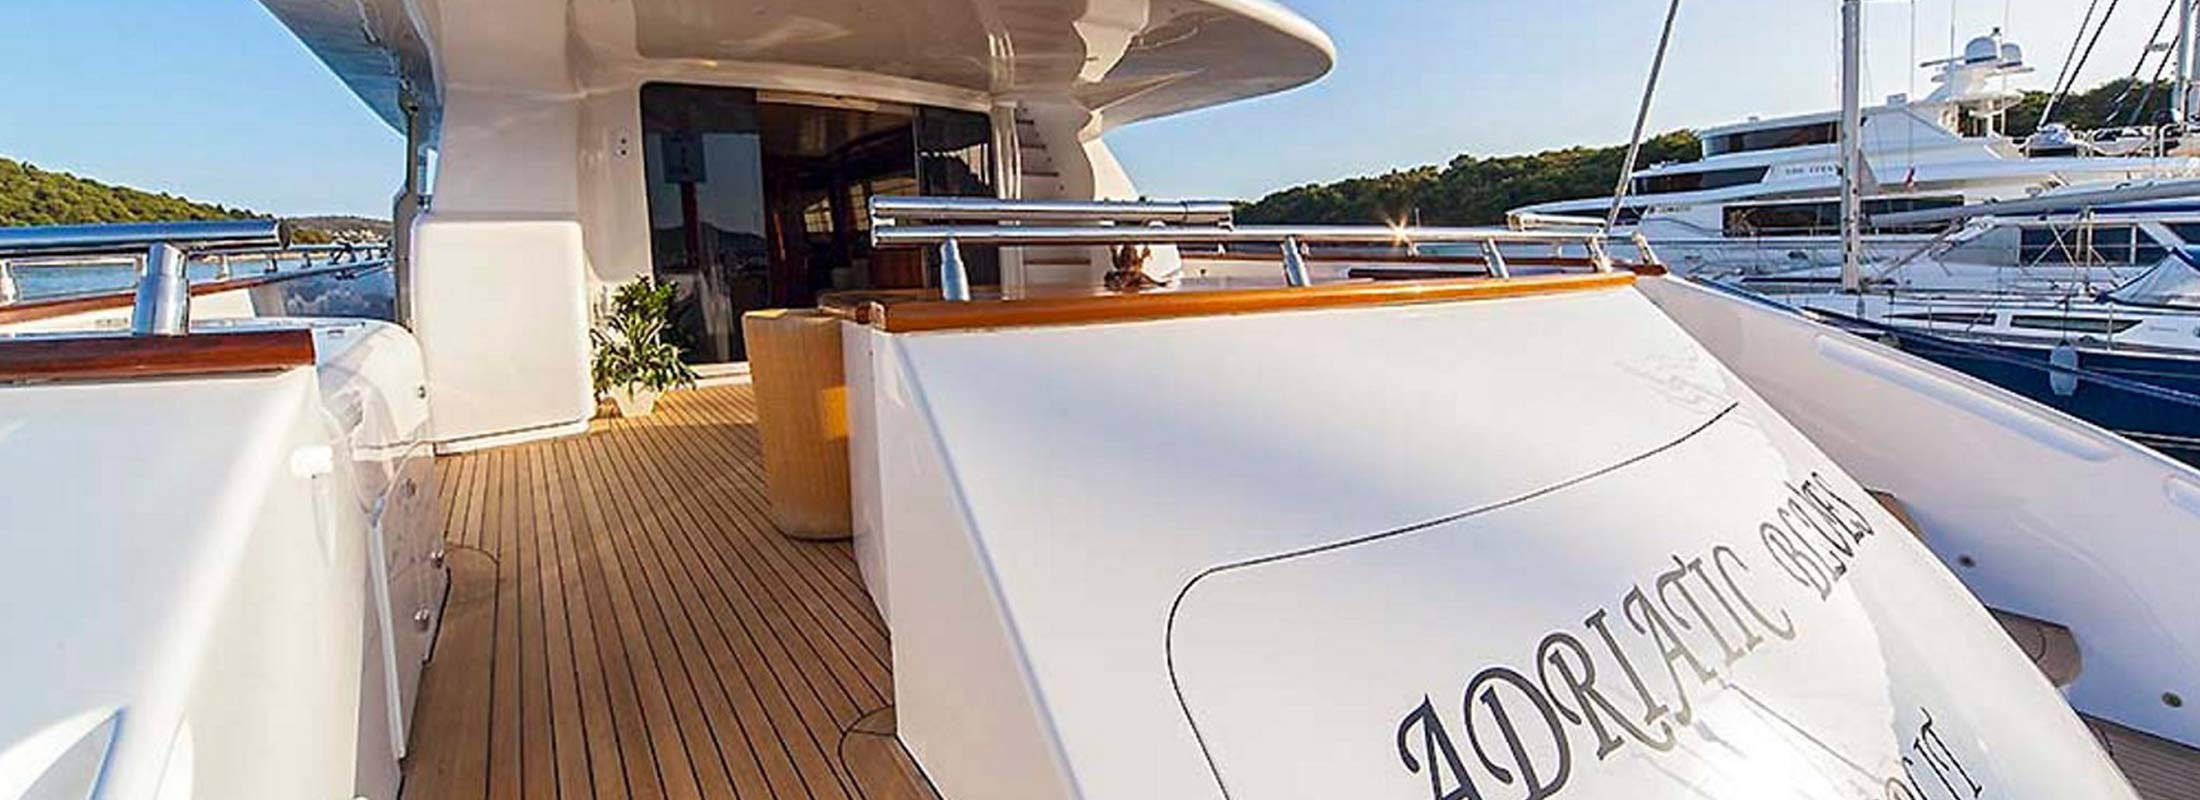 Adriatic Blues Motor Yacht for Charter Mediterranean slider 2